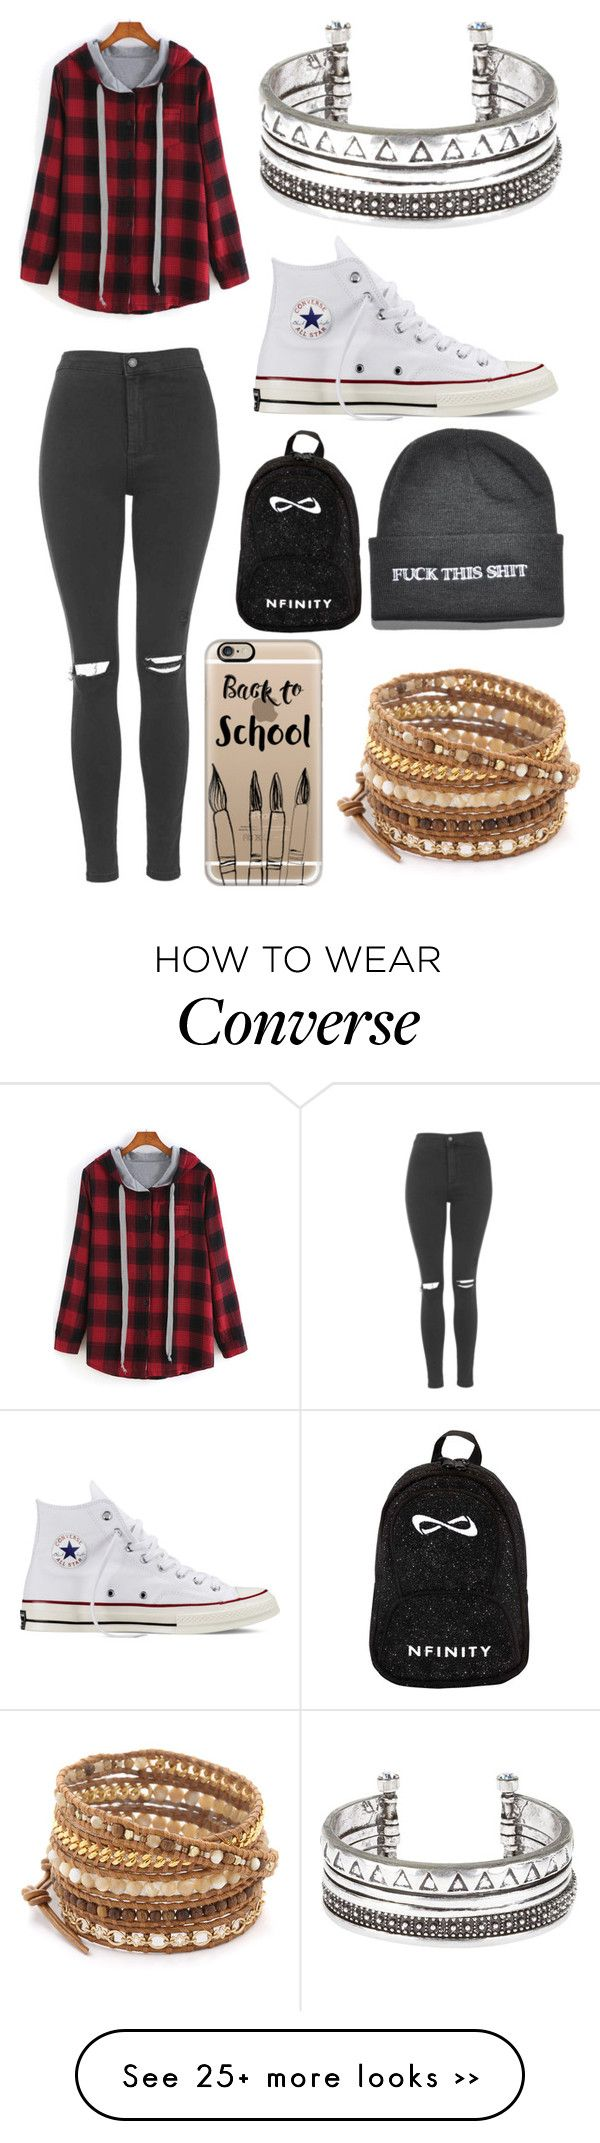 """Untitled #11579"" by aavagian on Polyvore featuring Topshop, Converse, Casetify and Chan Luu"